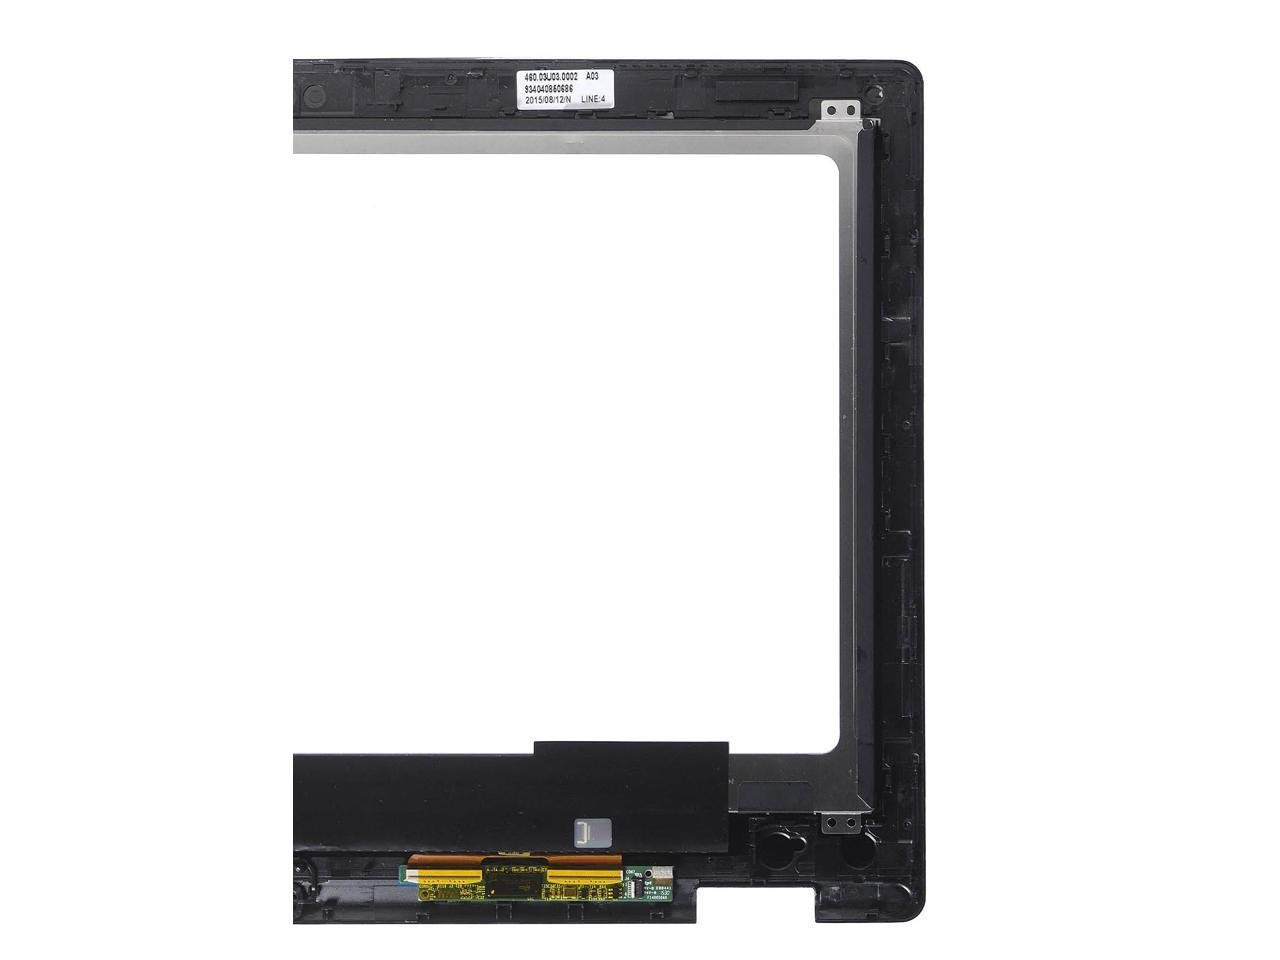 LA-Tronics Replacement Screen for Dell Inspiron 13 7352 7353 FHD 13.3'' IPS LCD Touch Screen Digitizer Assembly by LA-Tronics (Image #5)